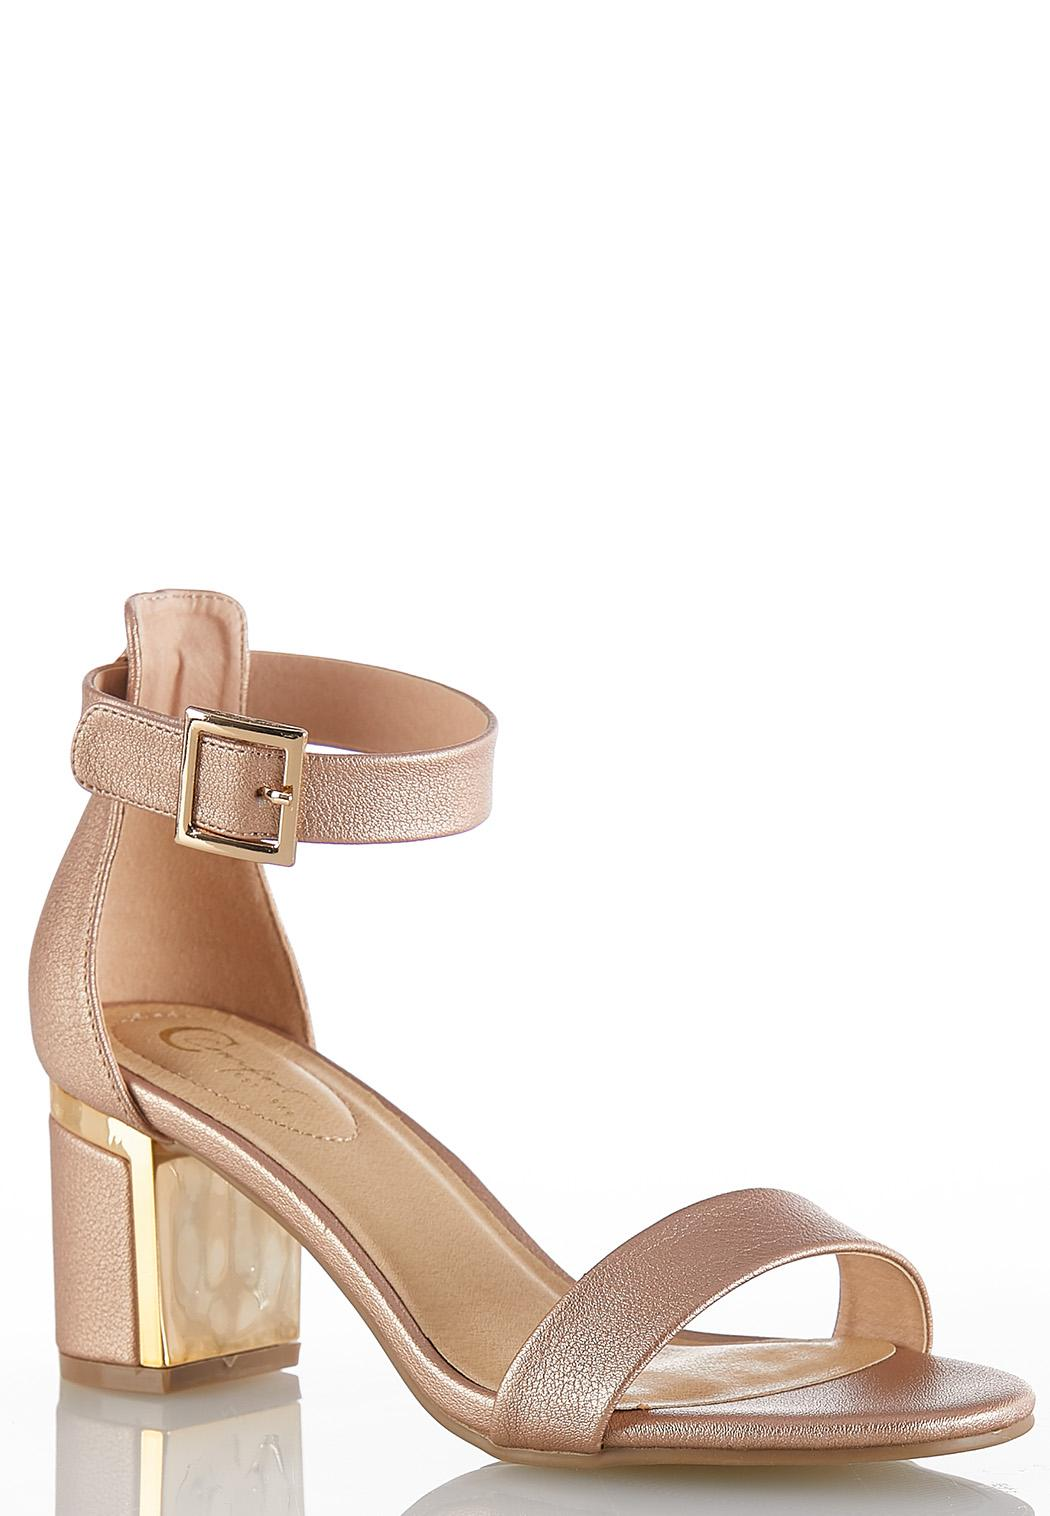 cc166e8abc9b Rose Gold Heeled Sandals Rose Gold Heeled Sandals